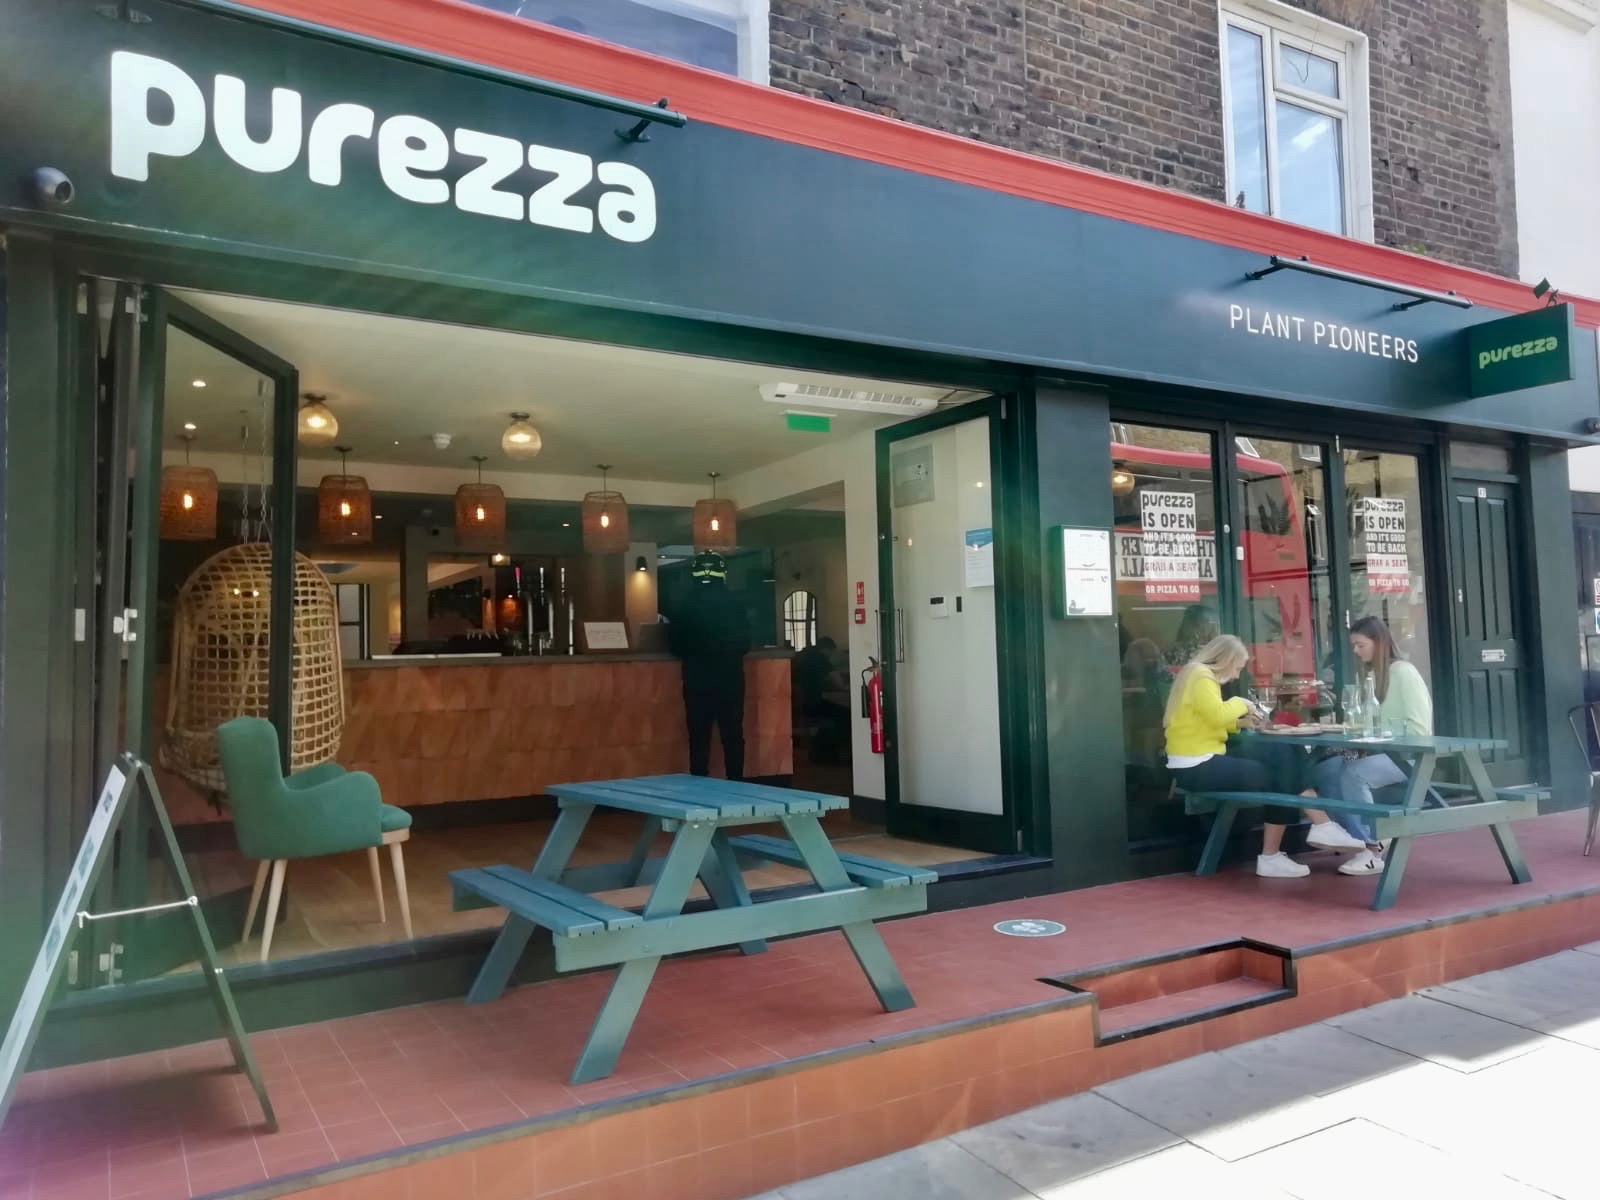 Purezza restaurant in Camden, London